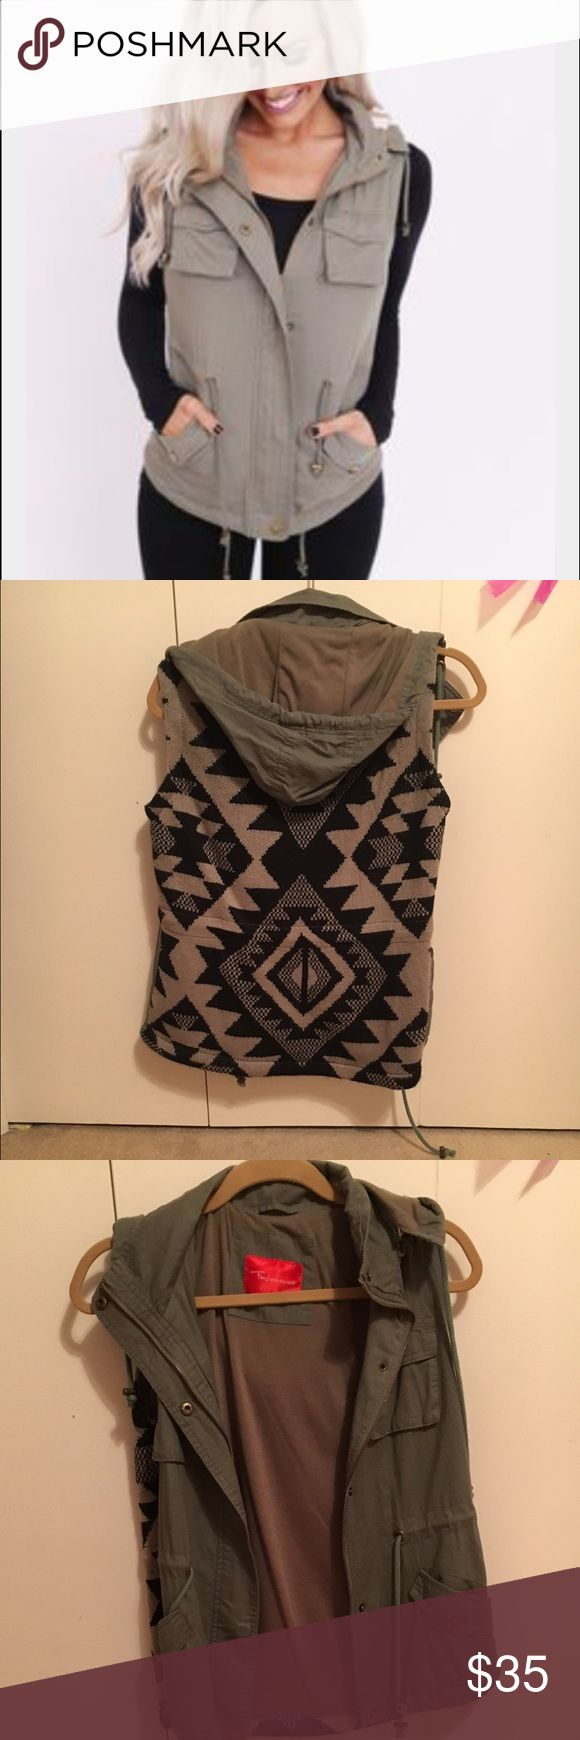 Olive vest Vest from Dottie couture boutique. Print on the back. Detachable hood. Perfect for fall! Only worn once. Dottie couture boutique Tops